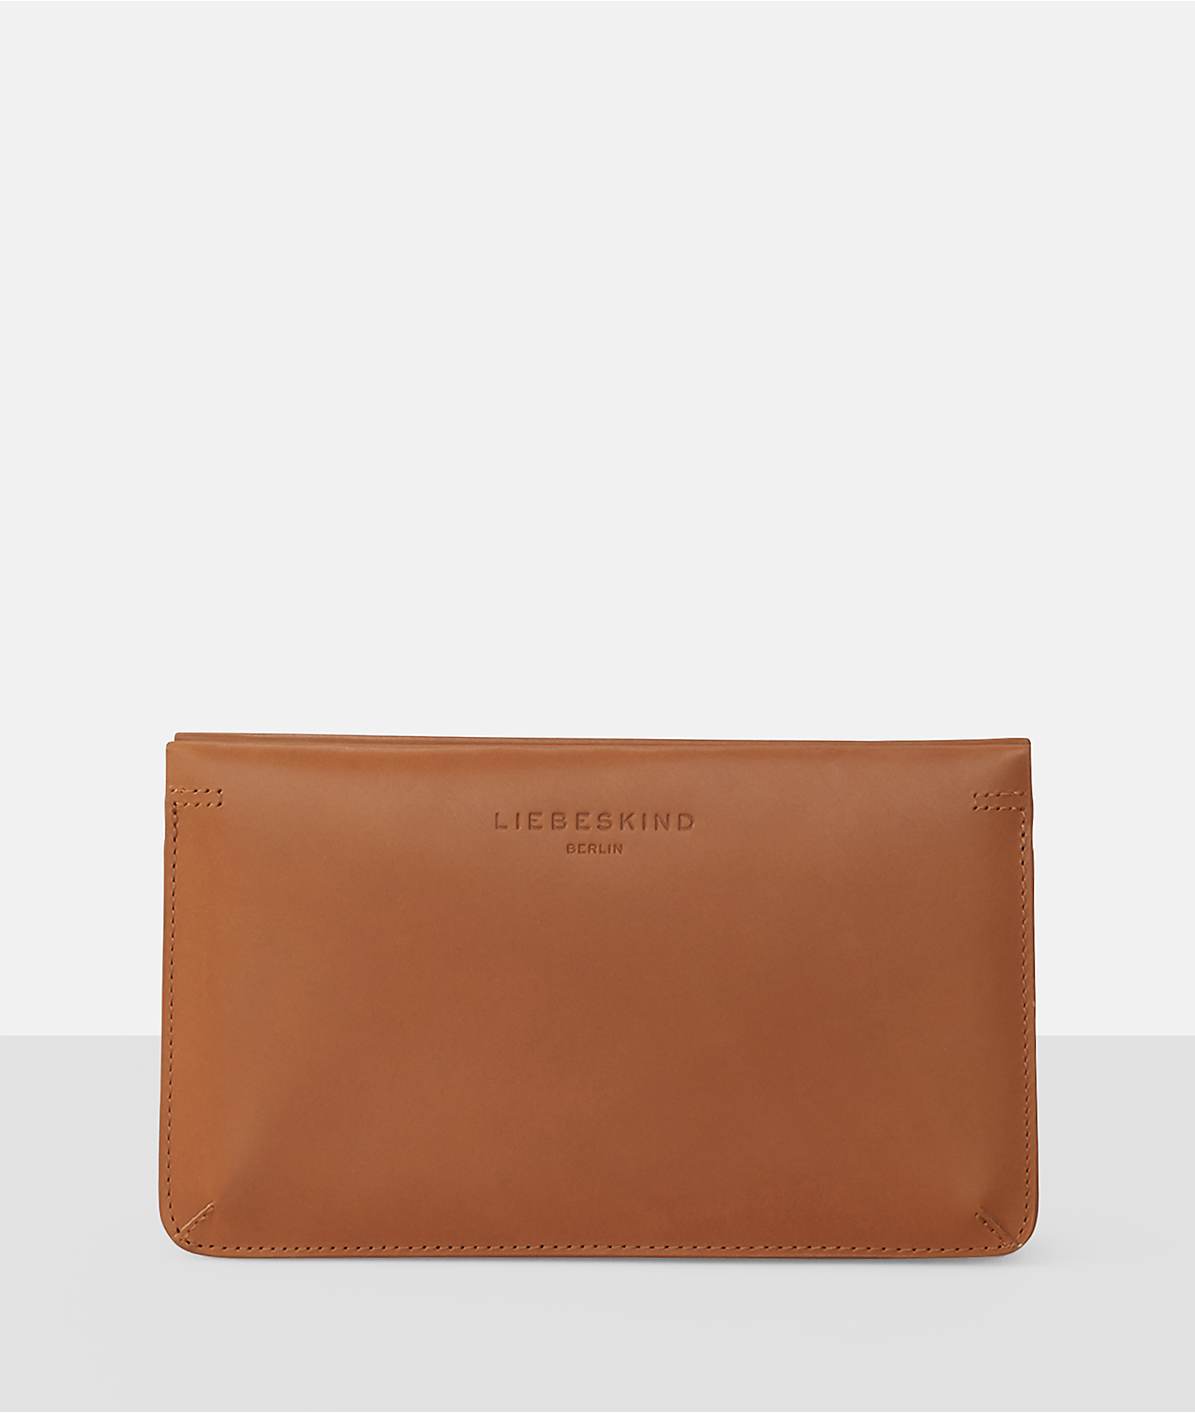 Amy make-up bag from liebeskind